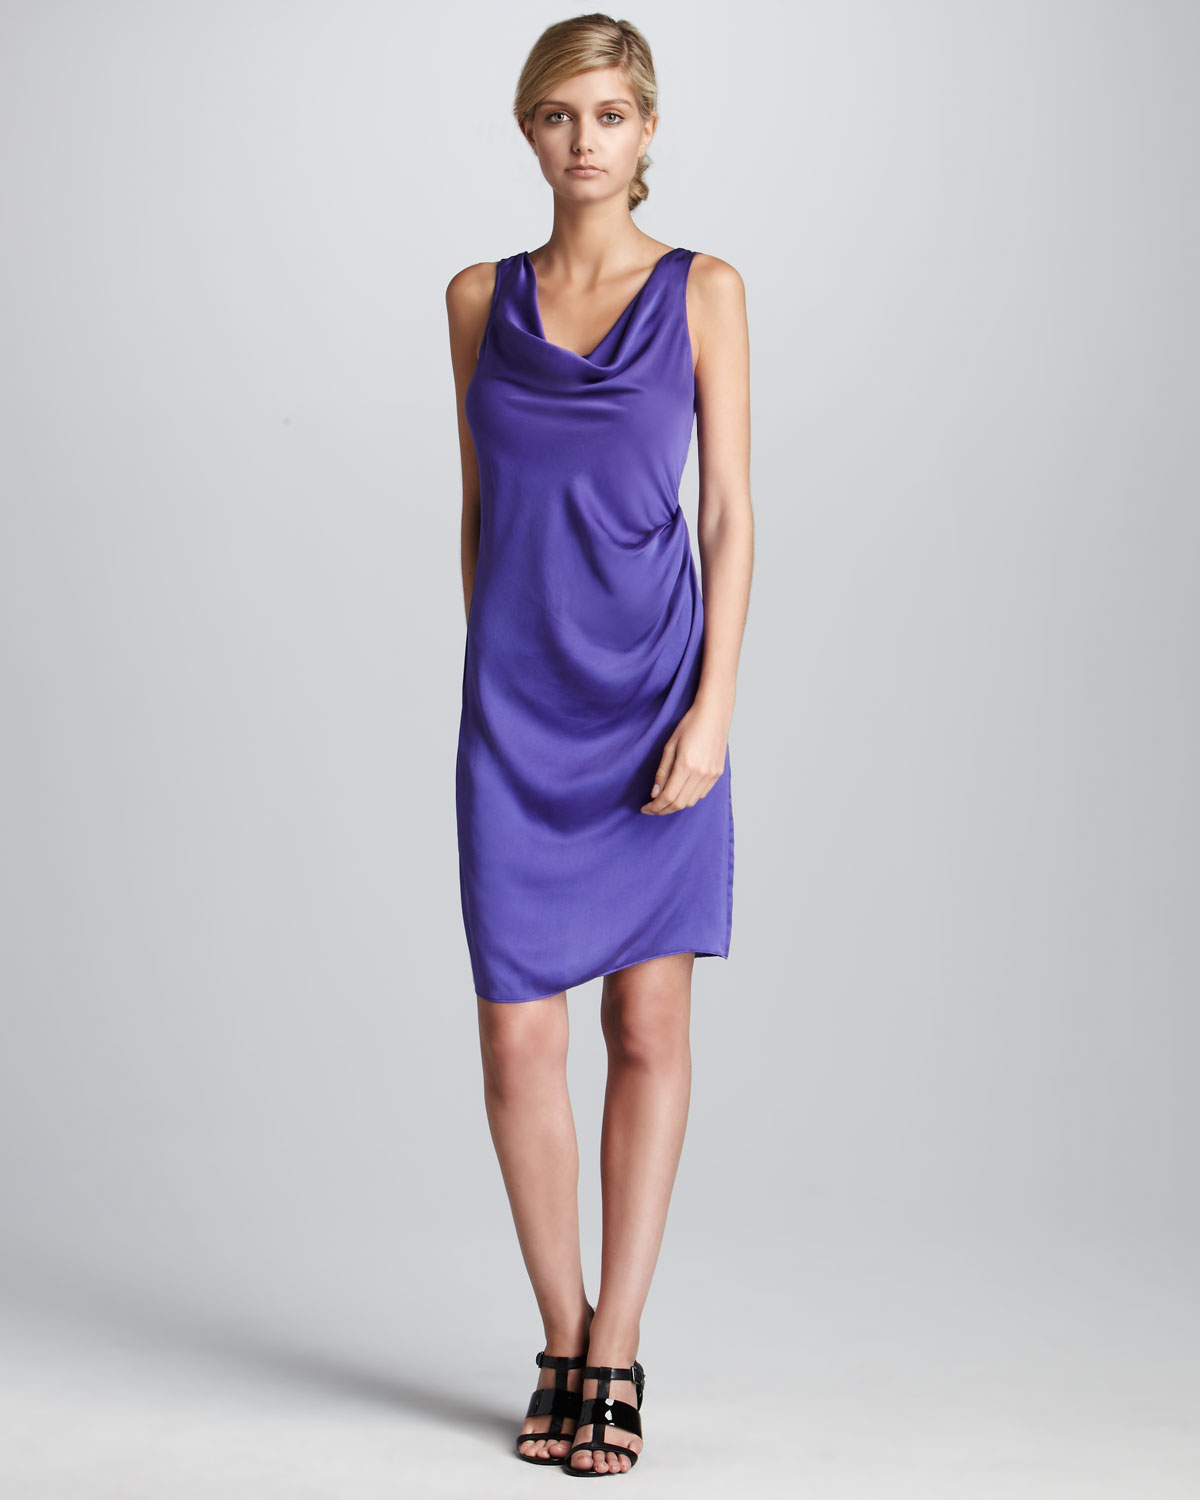 Cowl Neck Satin Wedding Dresses: Theory Satin Cowl-neck Dress In Purple (bright Violet)